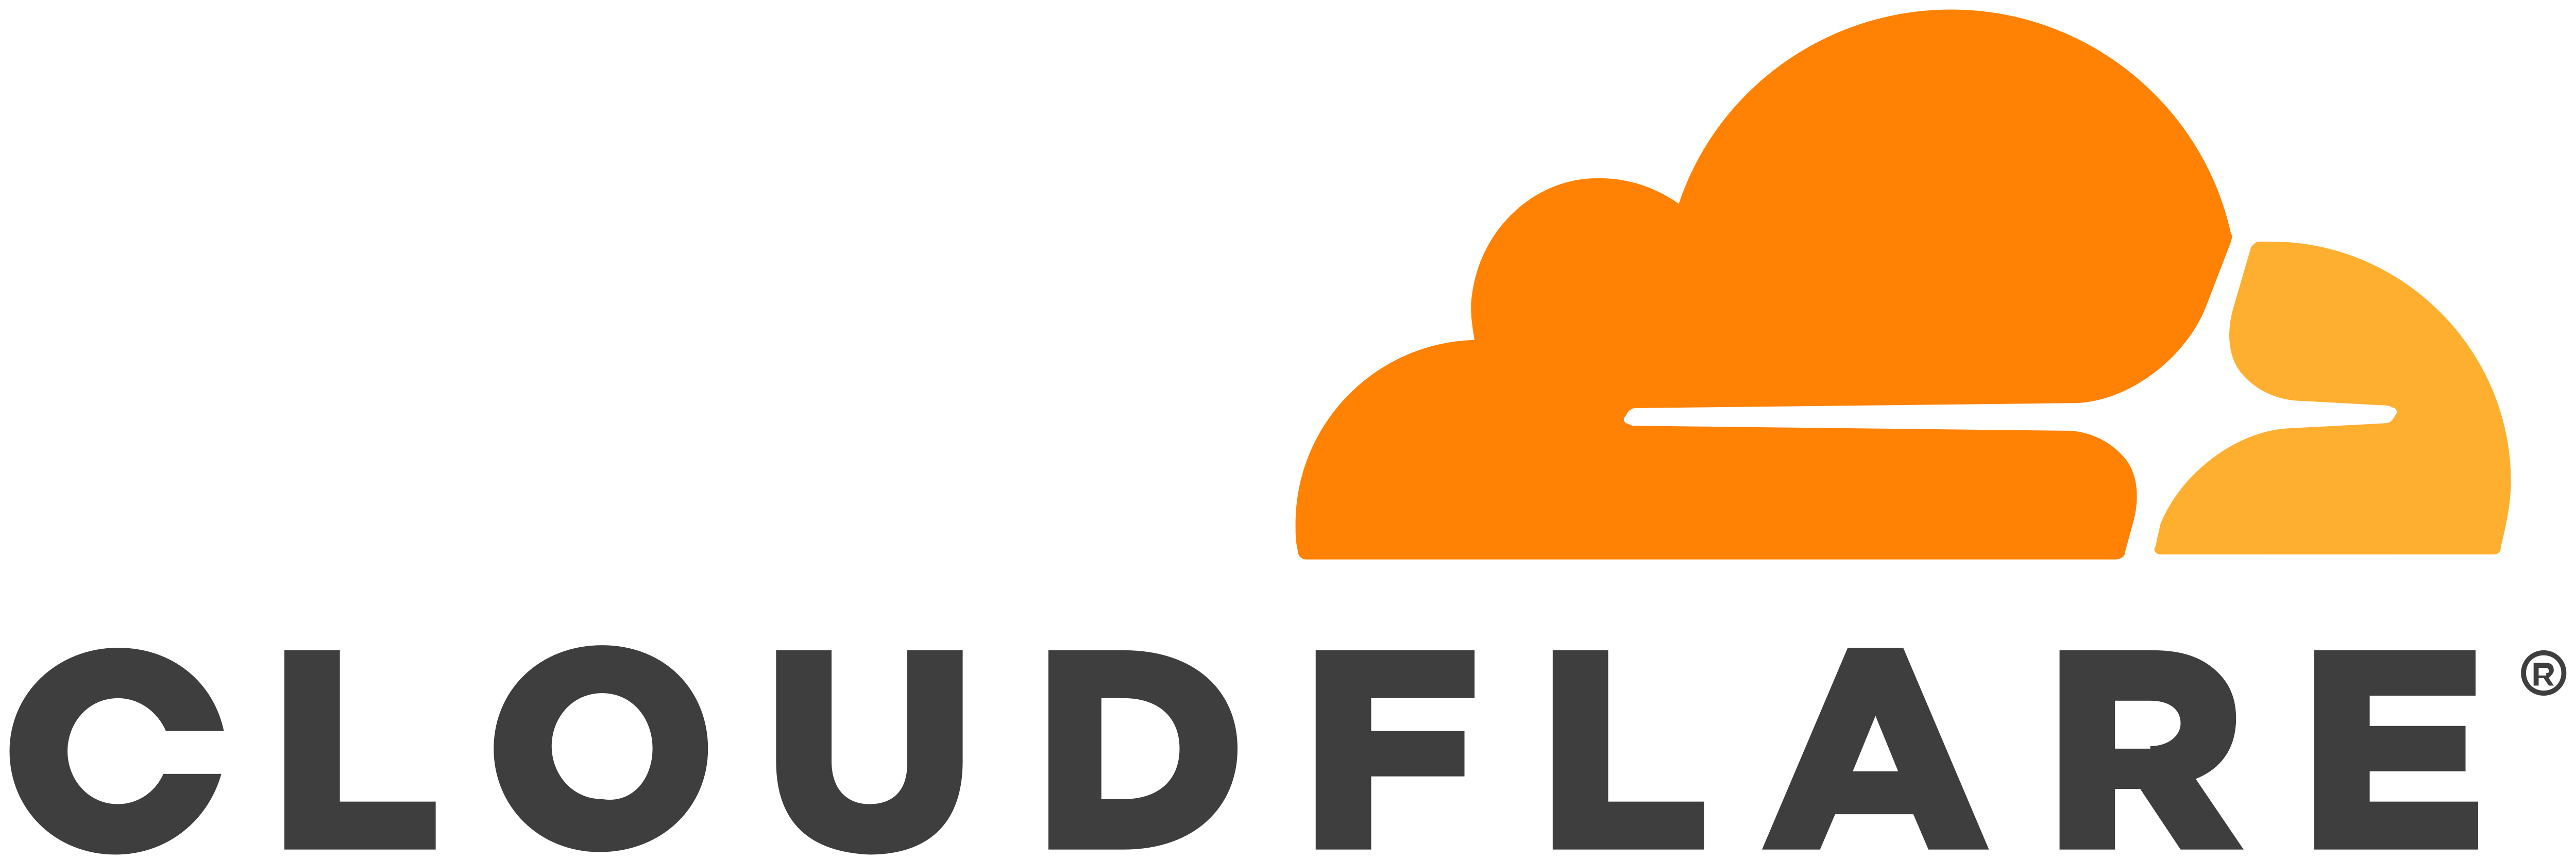 Cloudflare Inc.